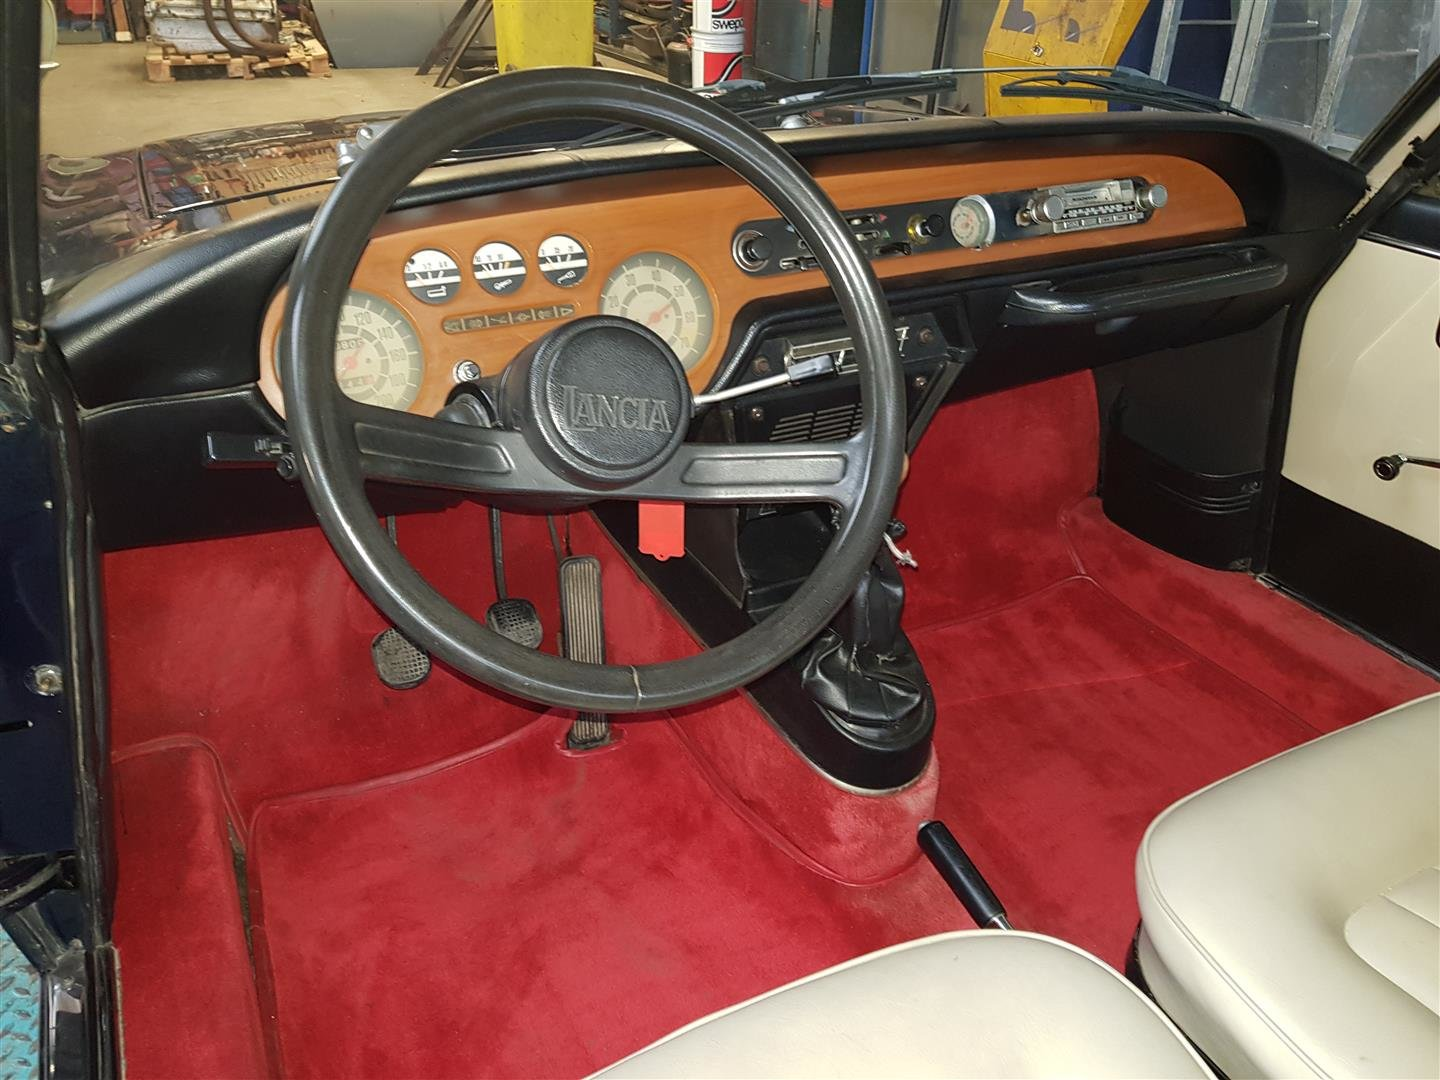 1974 Very nice Lancia Fulvia 1.3 S '74 For Sale (picture 6 of 6)